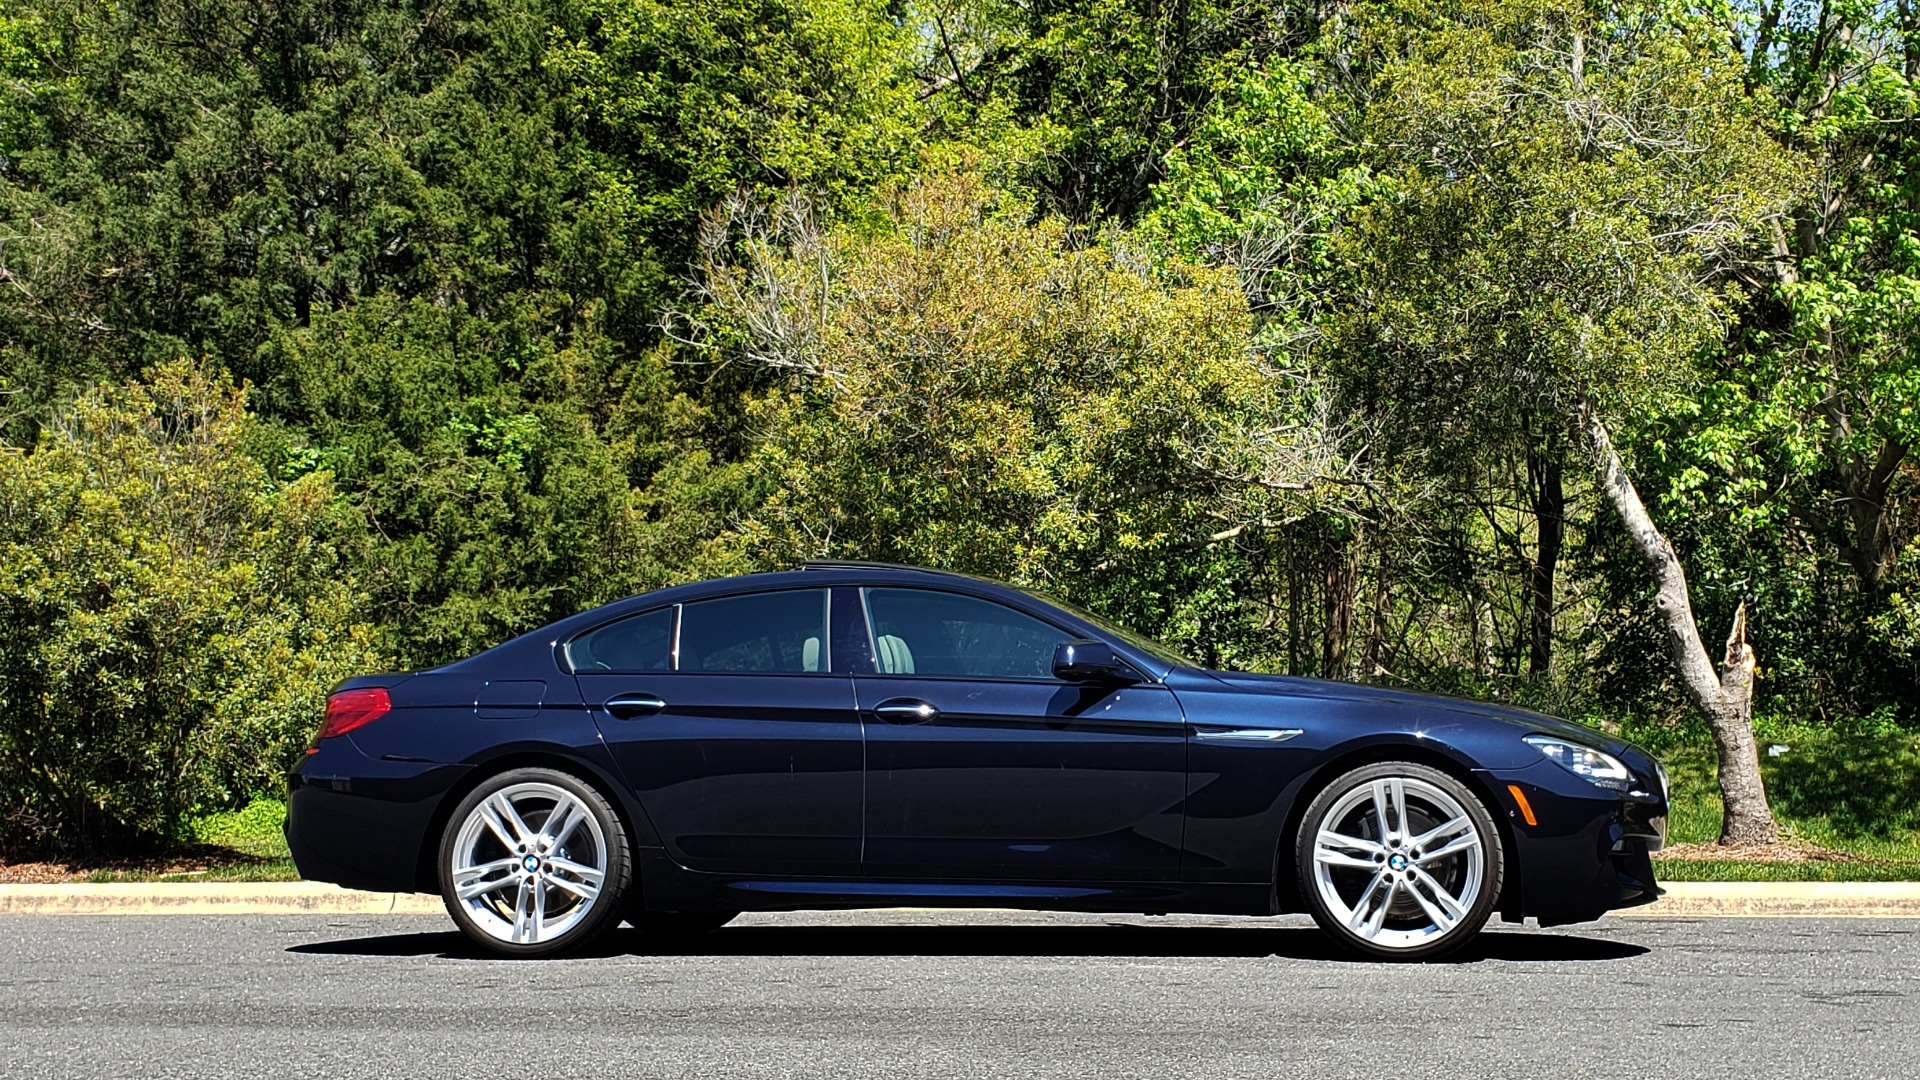 Used 2015 BMW 6 SERIES 650I GRANCOUPE M-SPORT / EXEC / DRVR ASST PLUS / LIGHTING for sale Sold at Formula Imports in Charlotte NC 28227 5